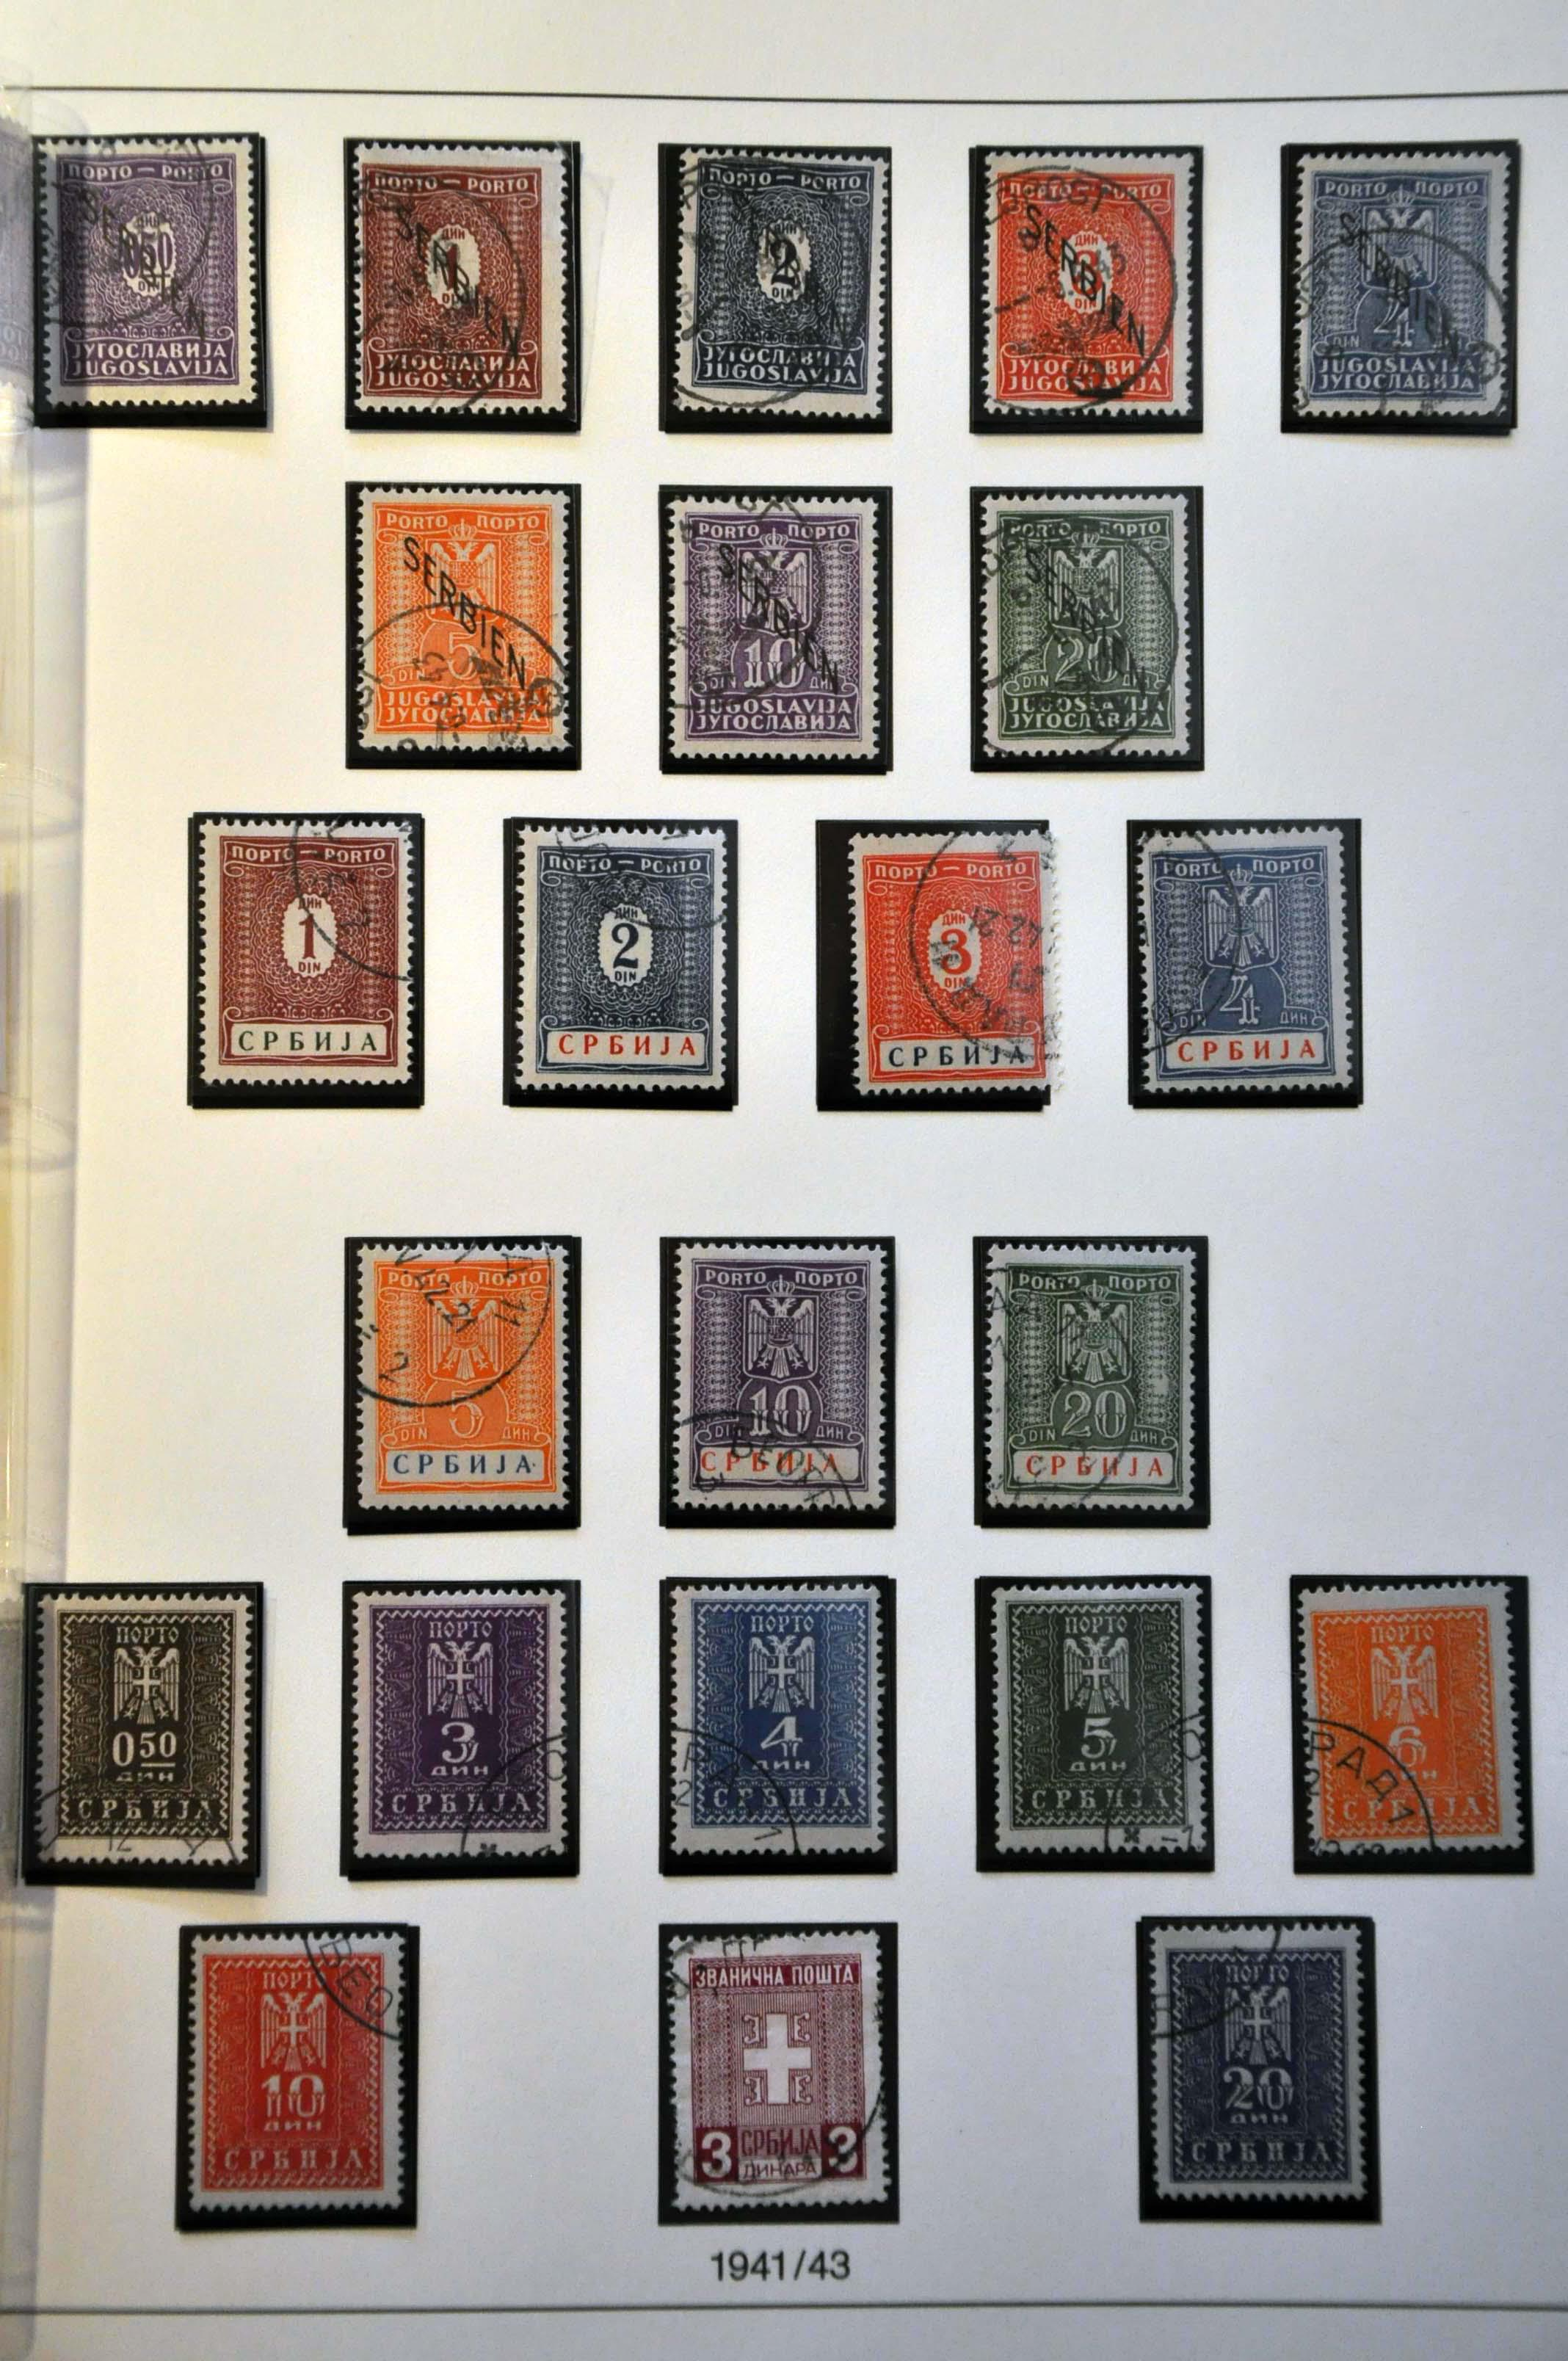 Lot 639 - Germany and former colonies German Occupation WW II Serbia -  Corinphila Veilingen Auction 244 -Netherlands and former colonies, WW2 Postal History, Bosnia, German and British colonies, Egypt. - Day 1